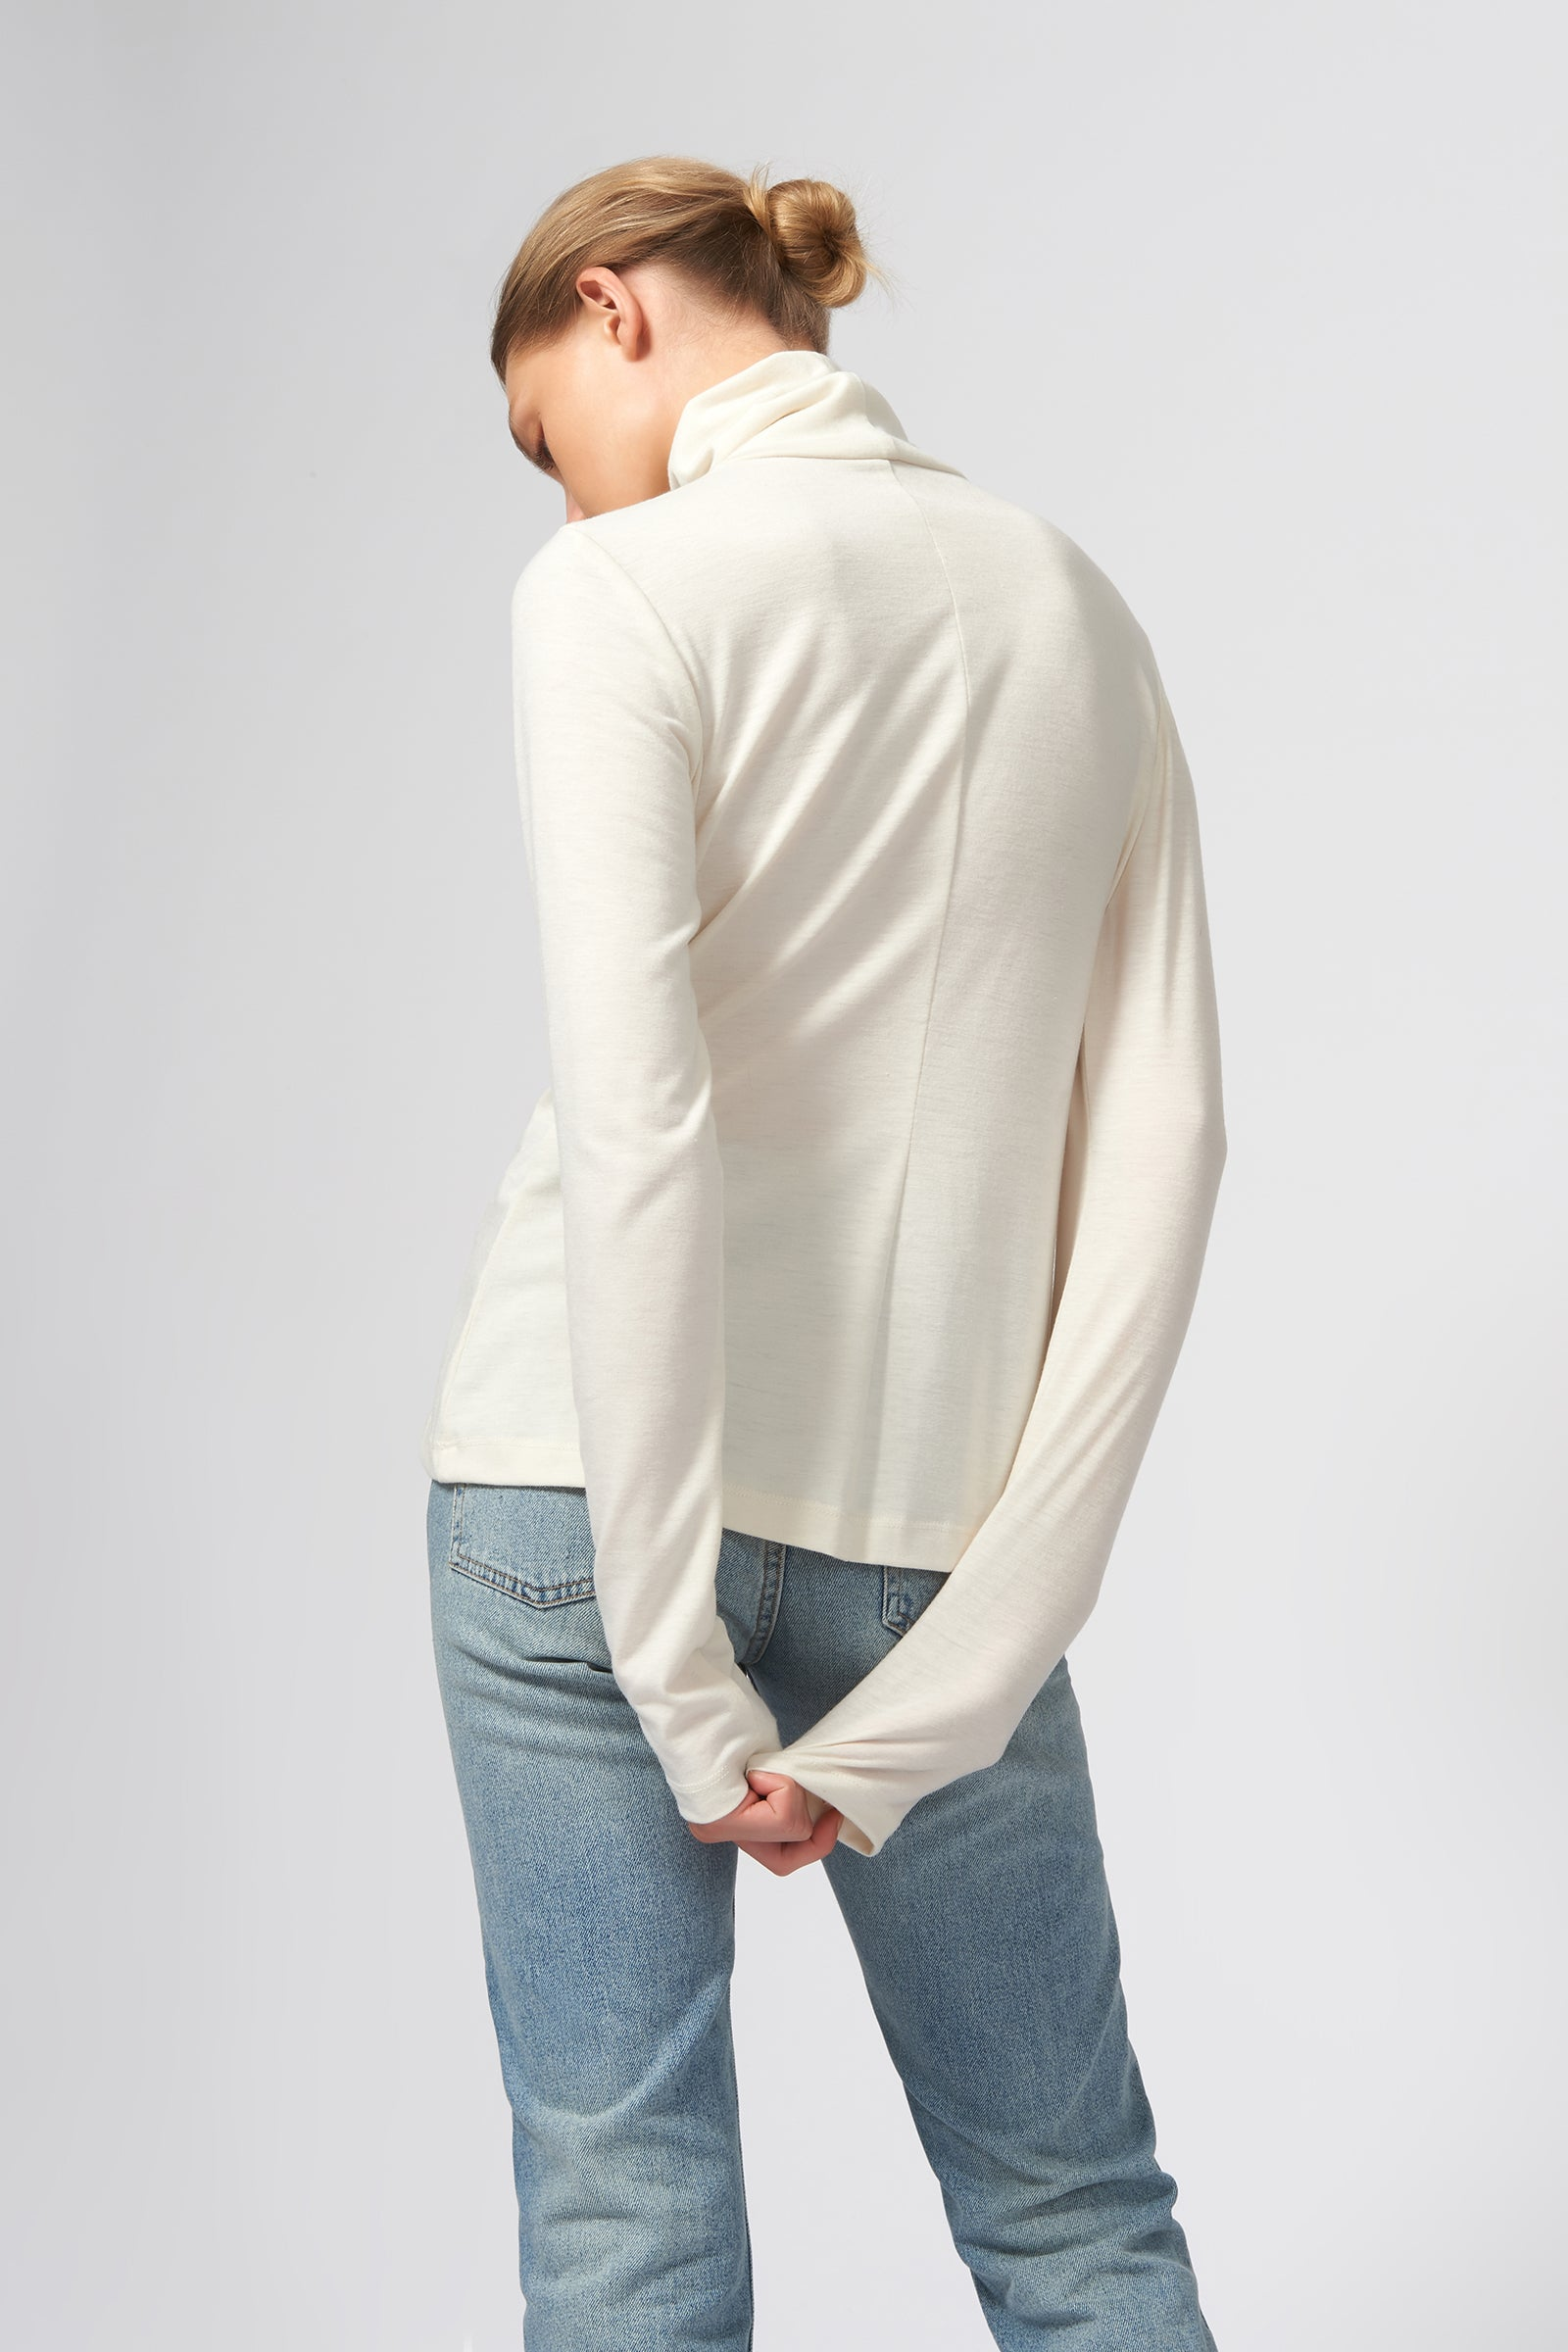 Kal Rieman Seamed Turtleneck in Ivory on Model Back View